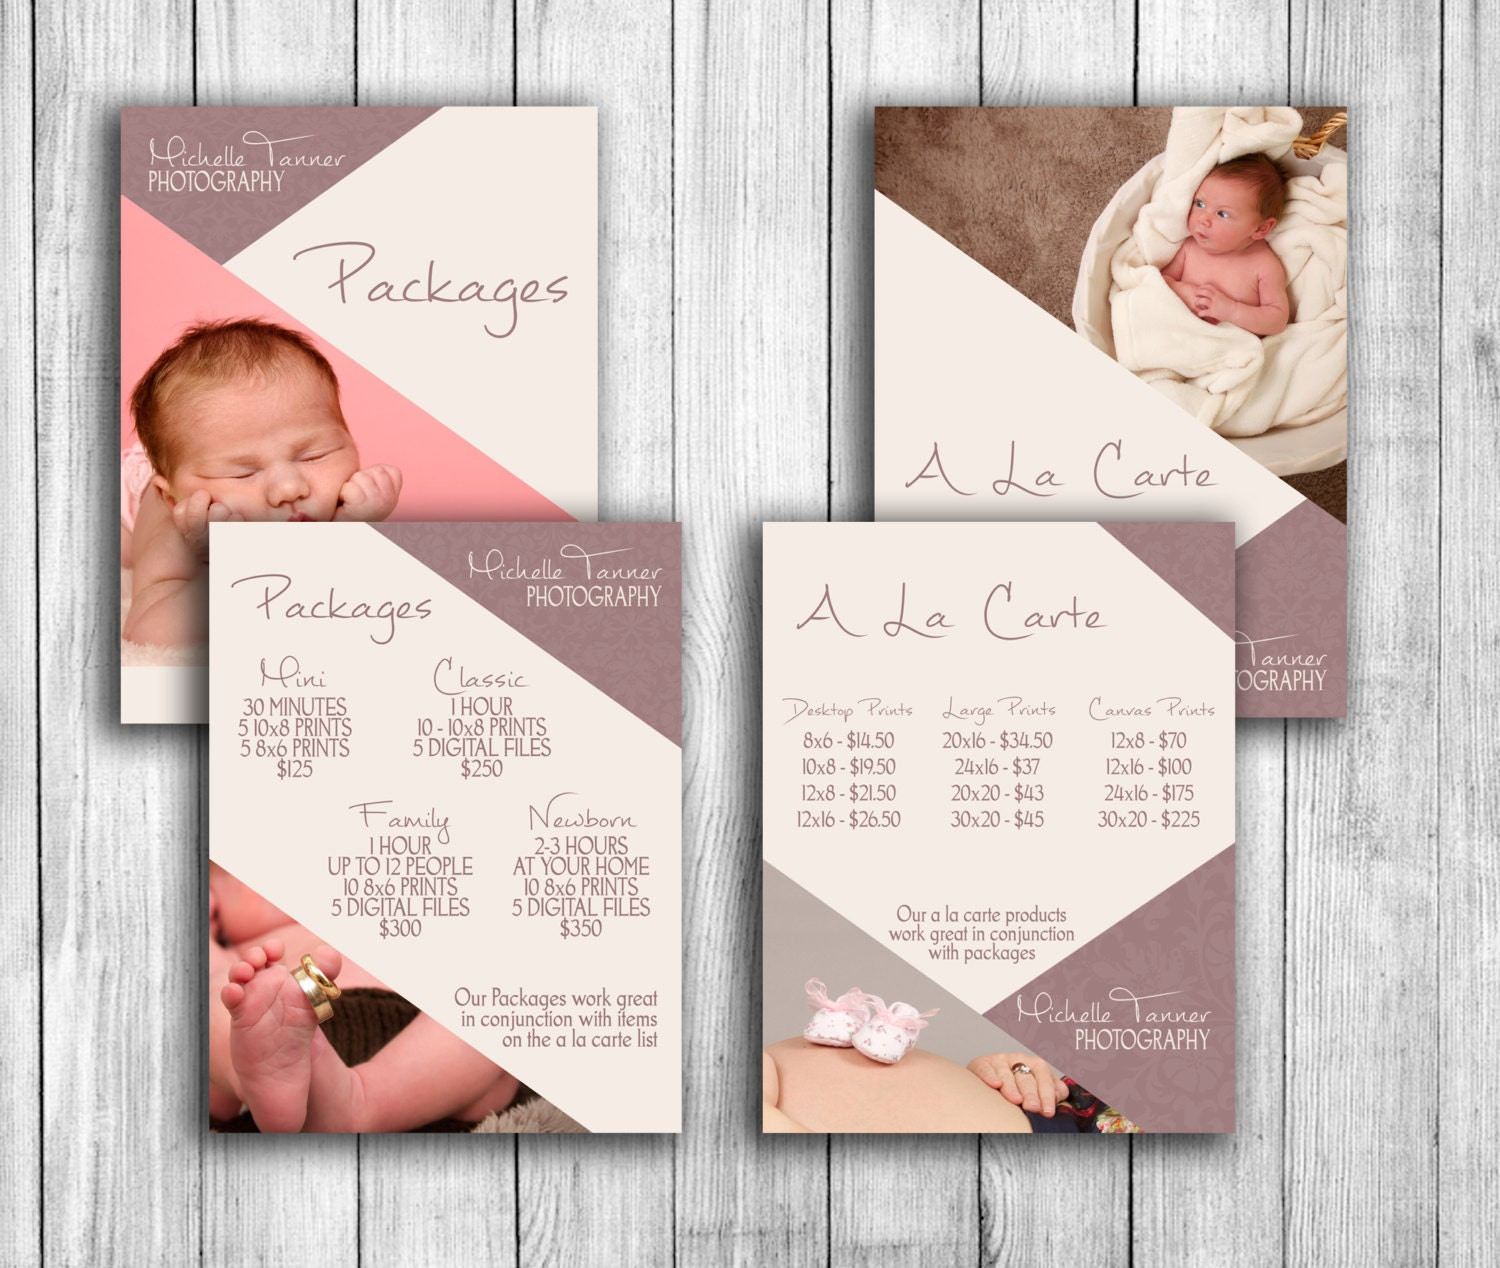 Price guide template for photographers with matching a la carte, lace price  list templates, photoshop pricing files psd instant download